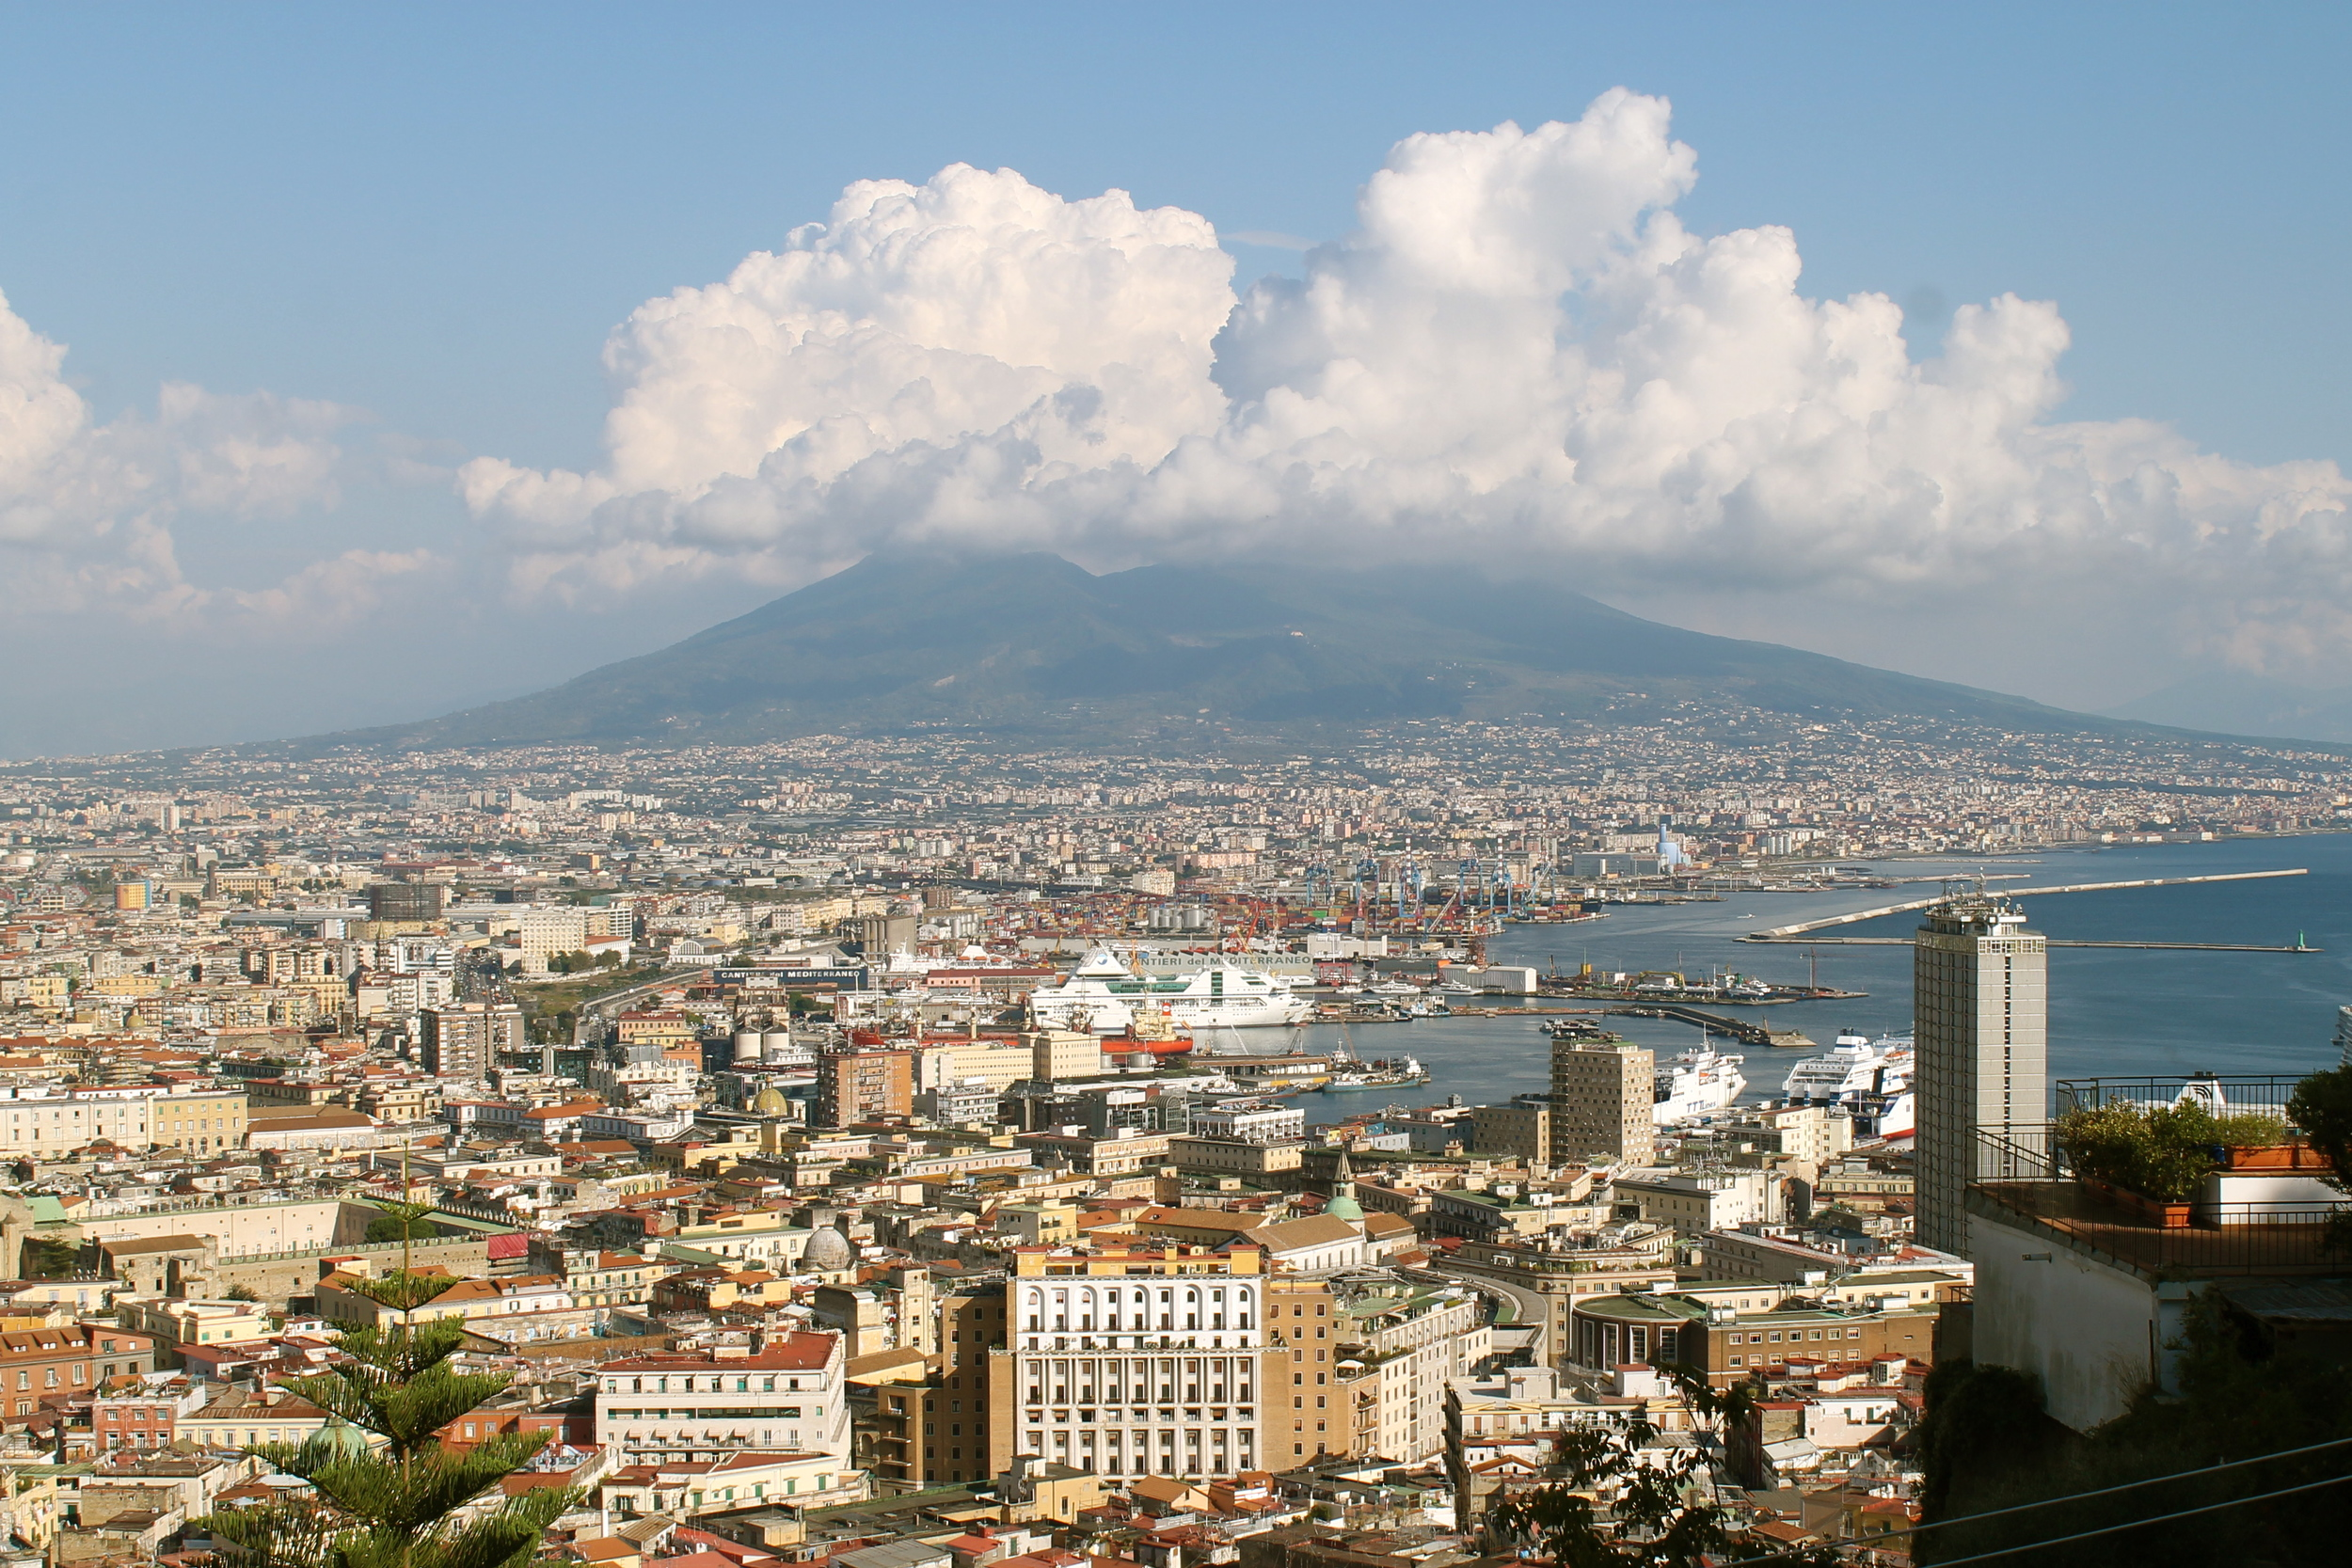 Vesuvius, looming in the background.